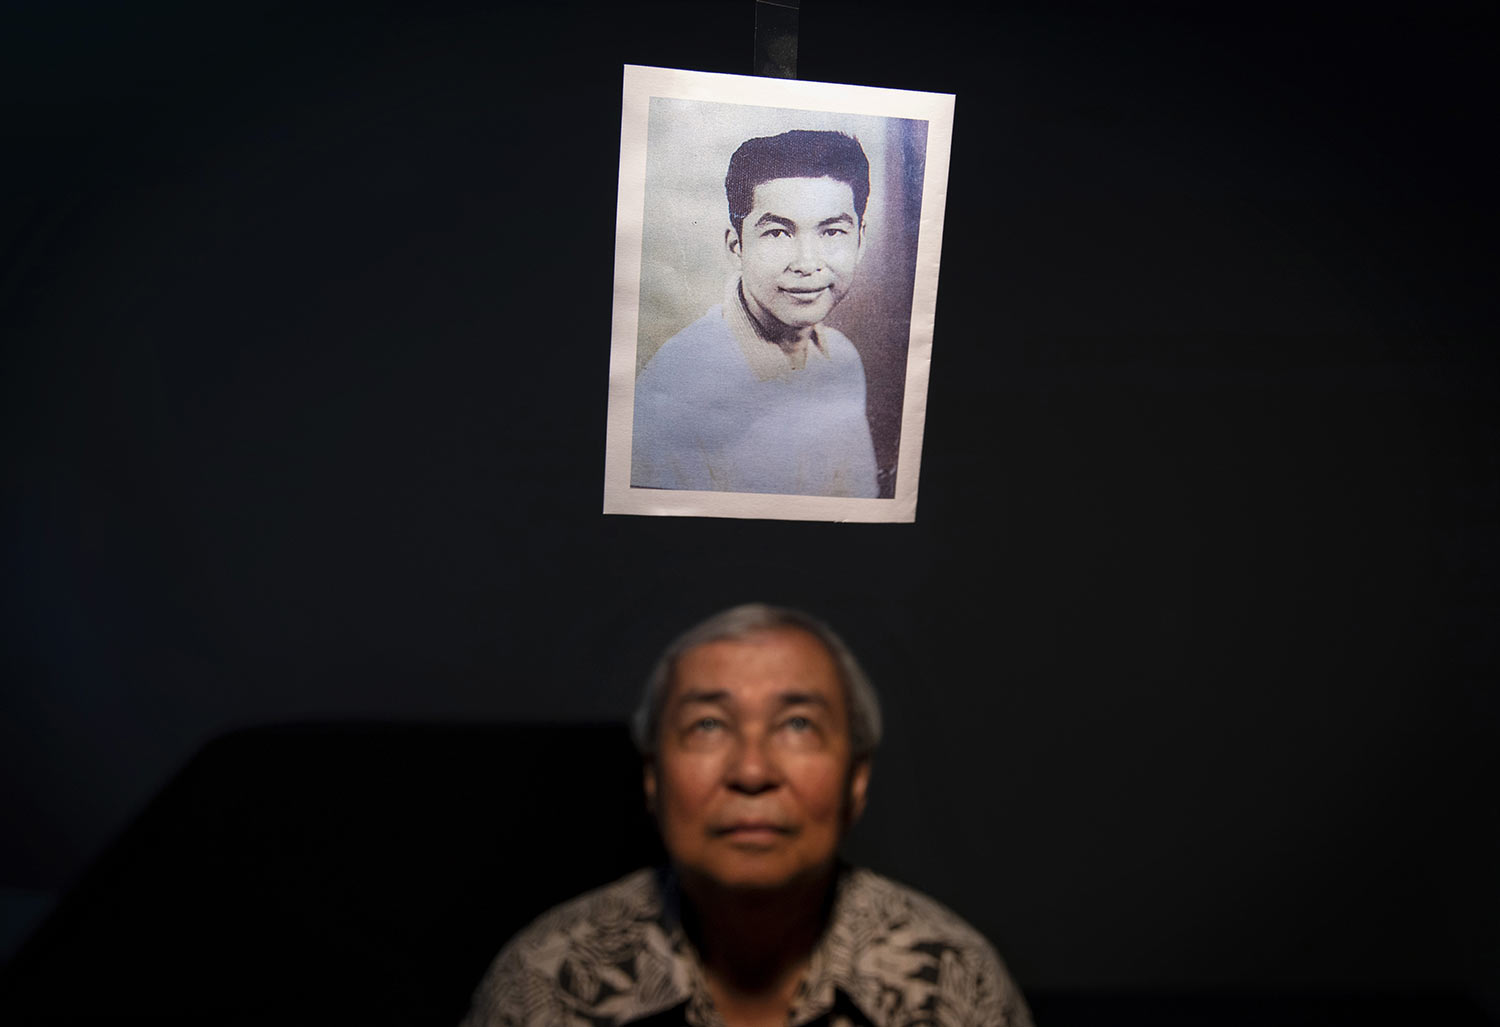 Leo Tudela. 75, looks up at a photo of himself when he was 13 years old. (AP Photo/David Goldman)